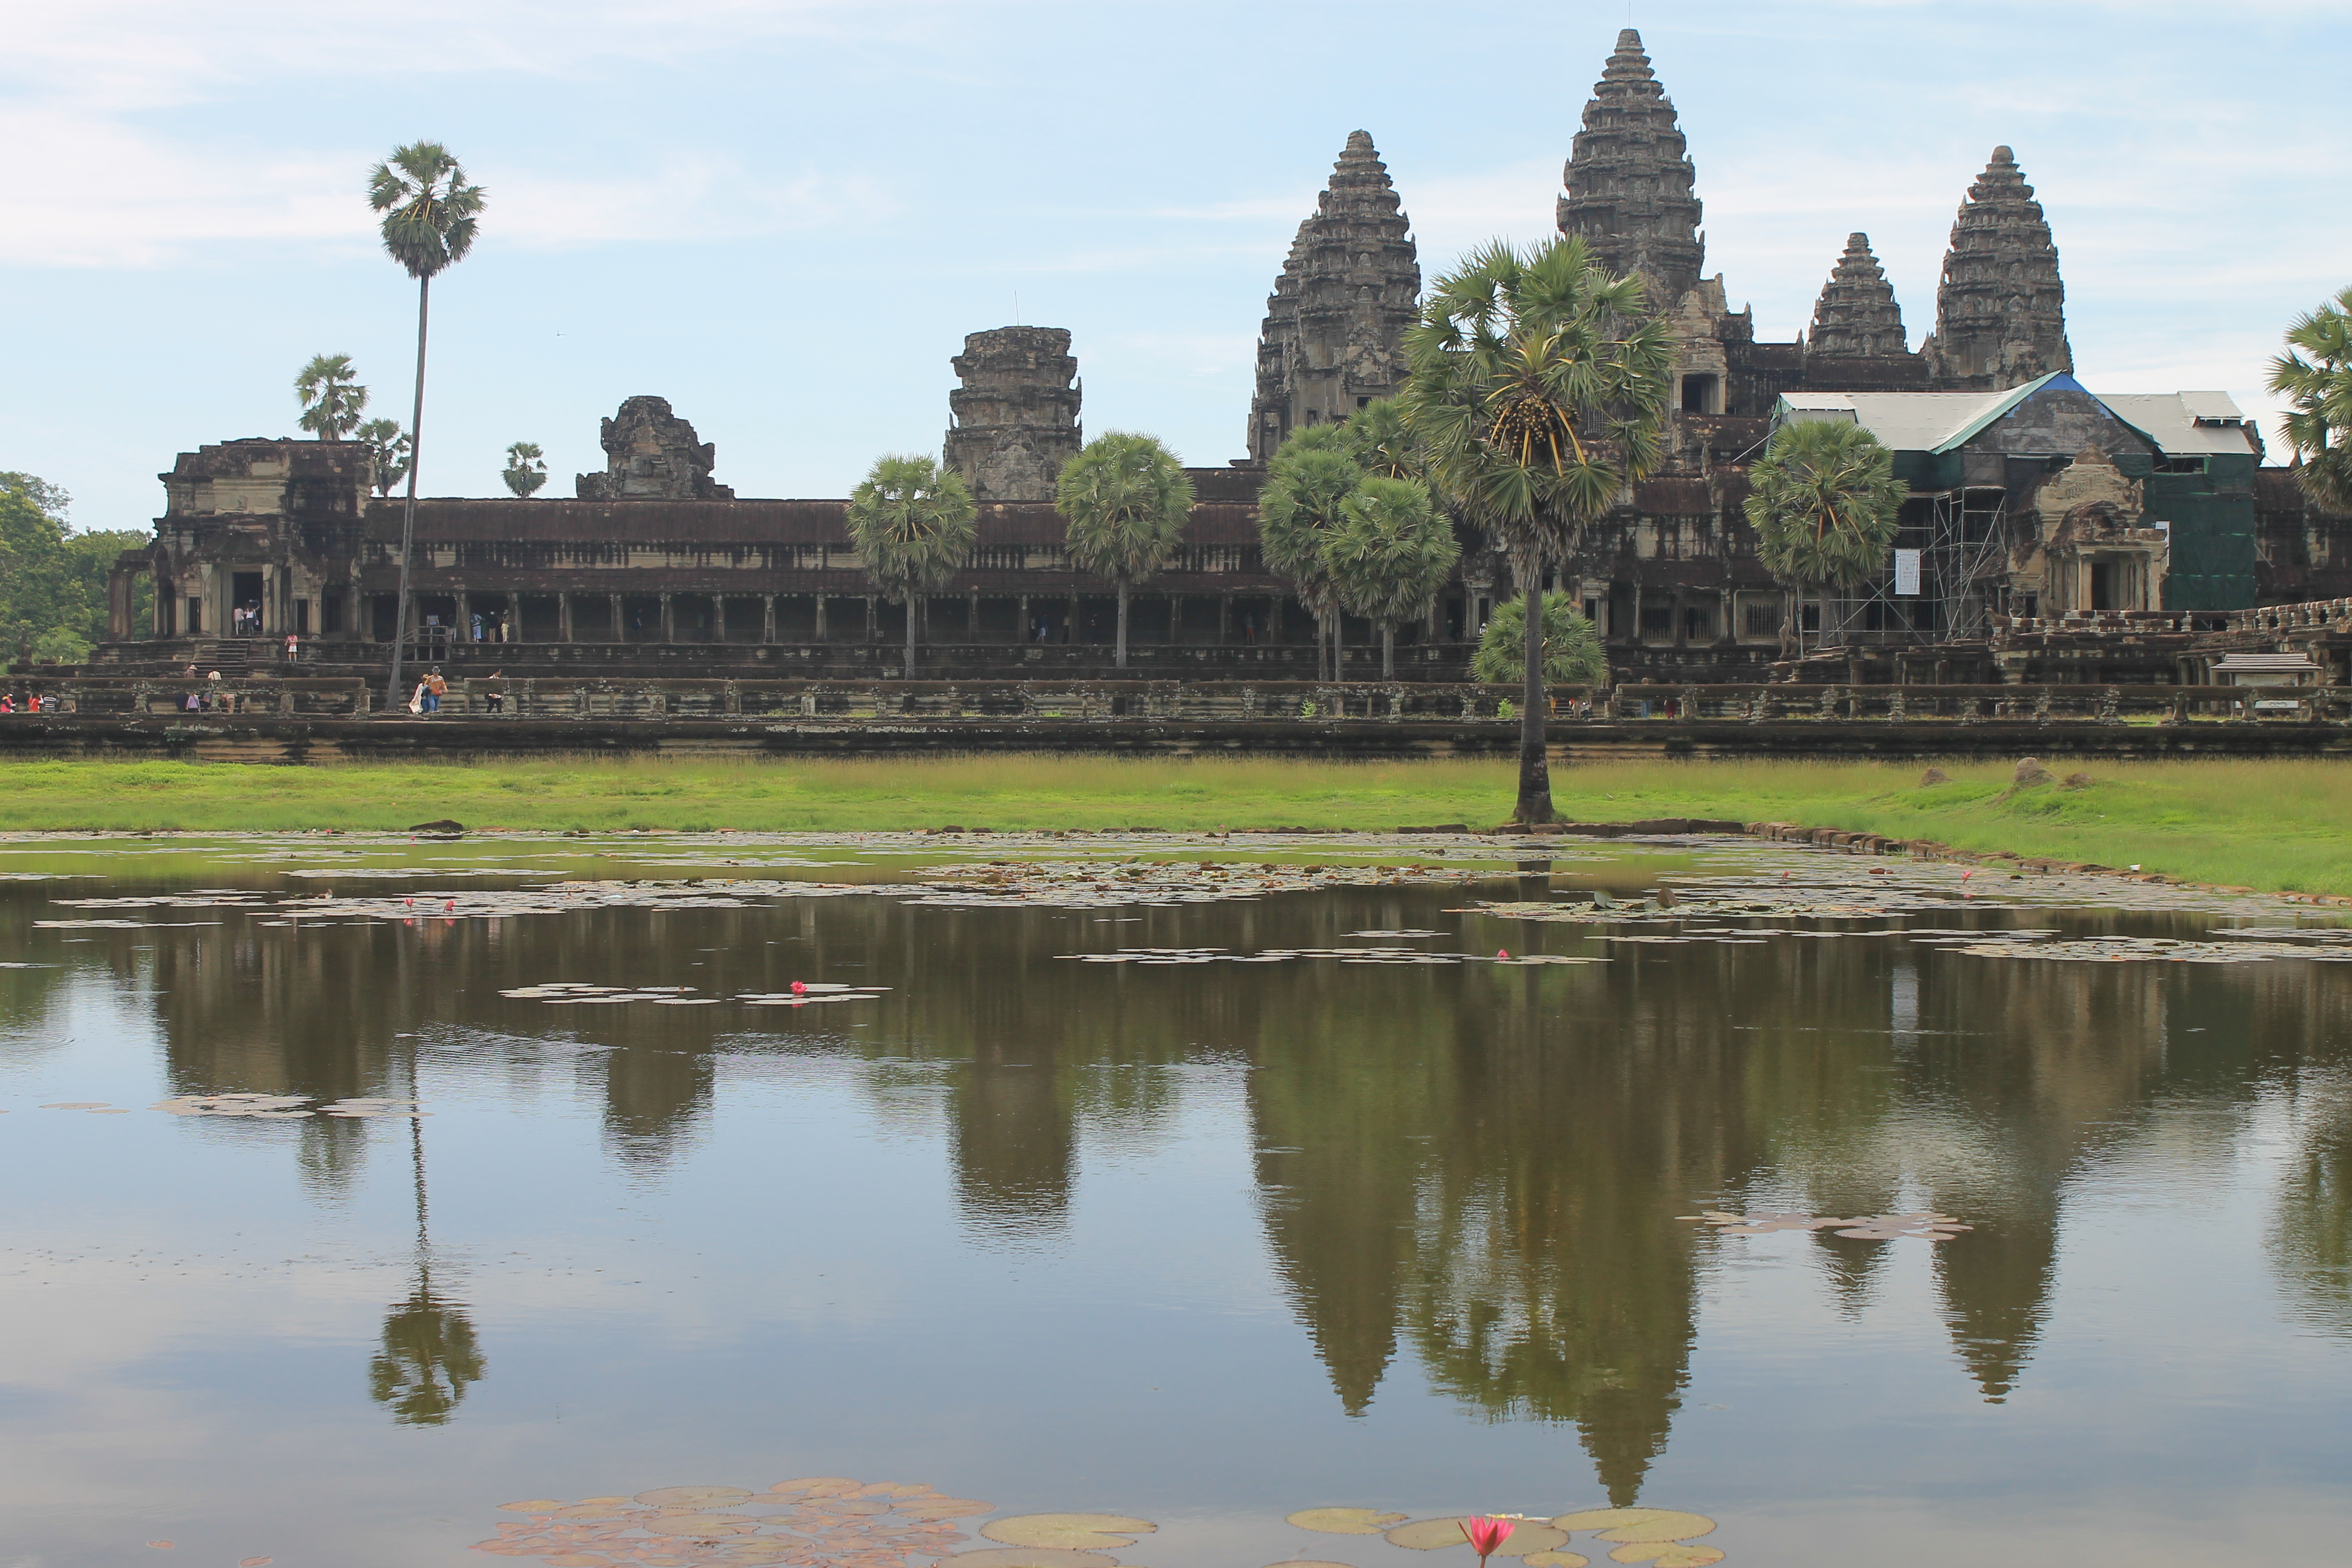 Angkor Howard Hotel and Convention Center - Hotel in Siem Reap